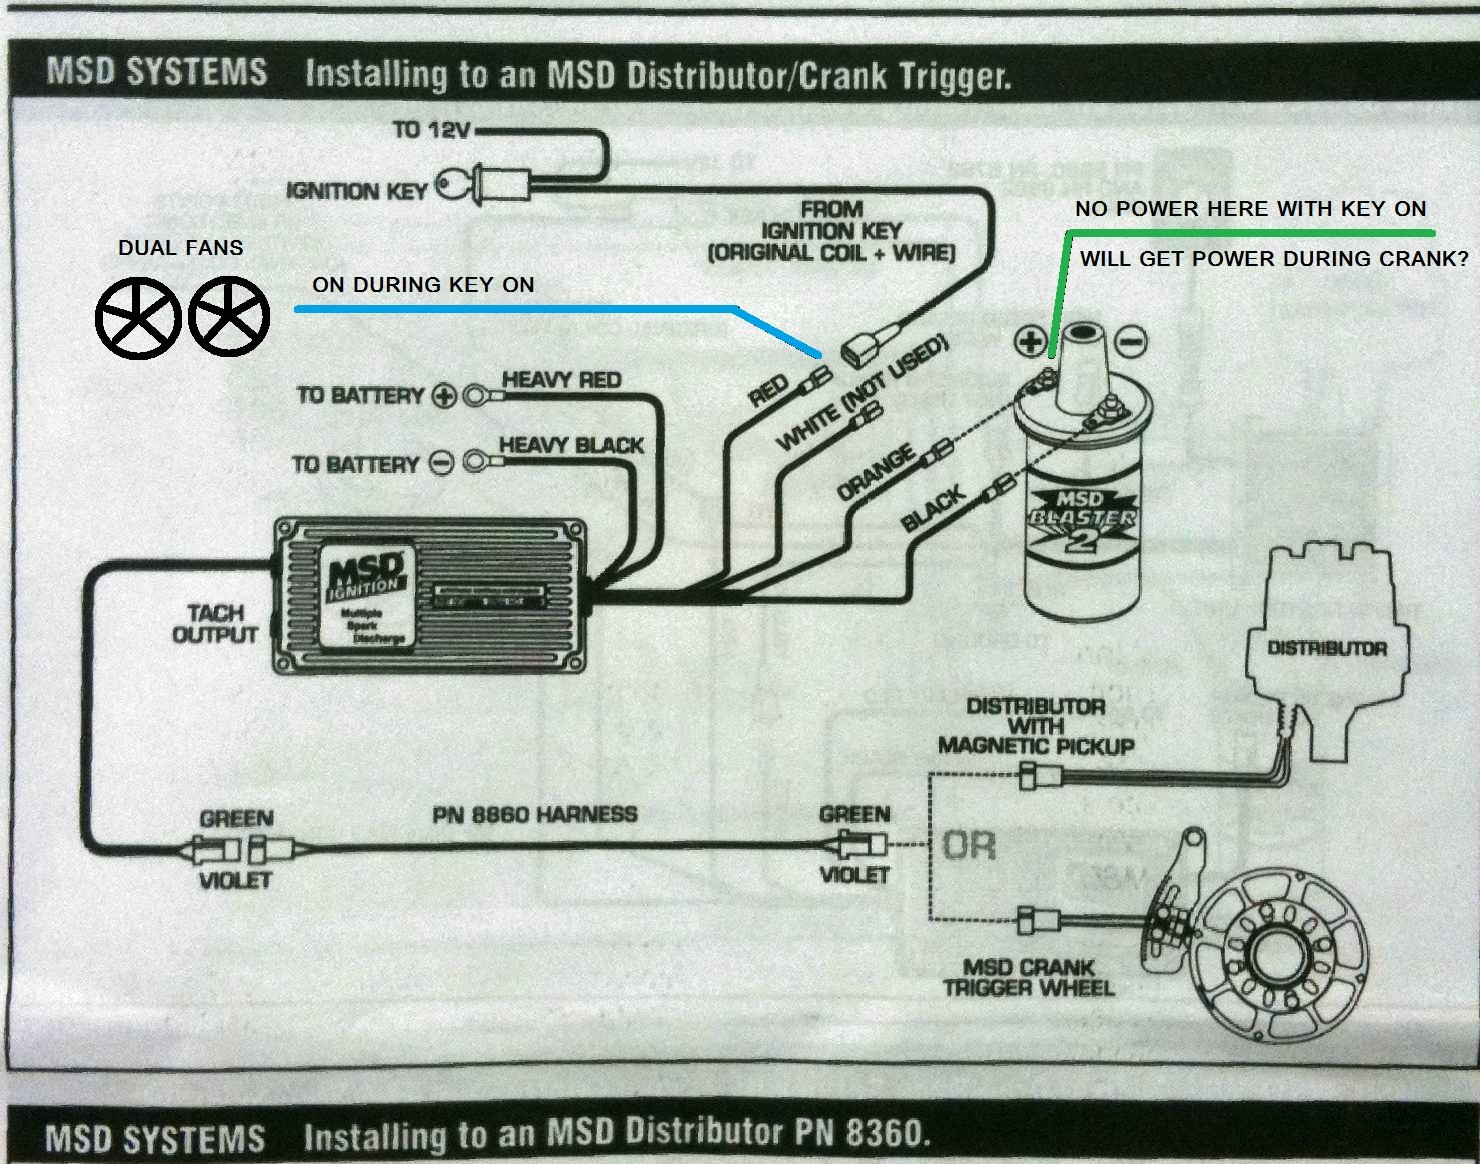 msd 6a 6200 wiring diagram project management network examples ignition best library 114688d1288762436 coil wire always key only 1955 chevy 6al box